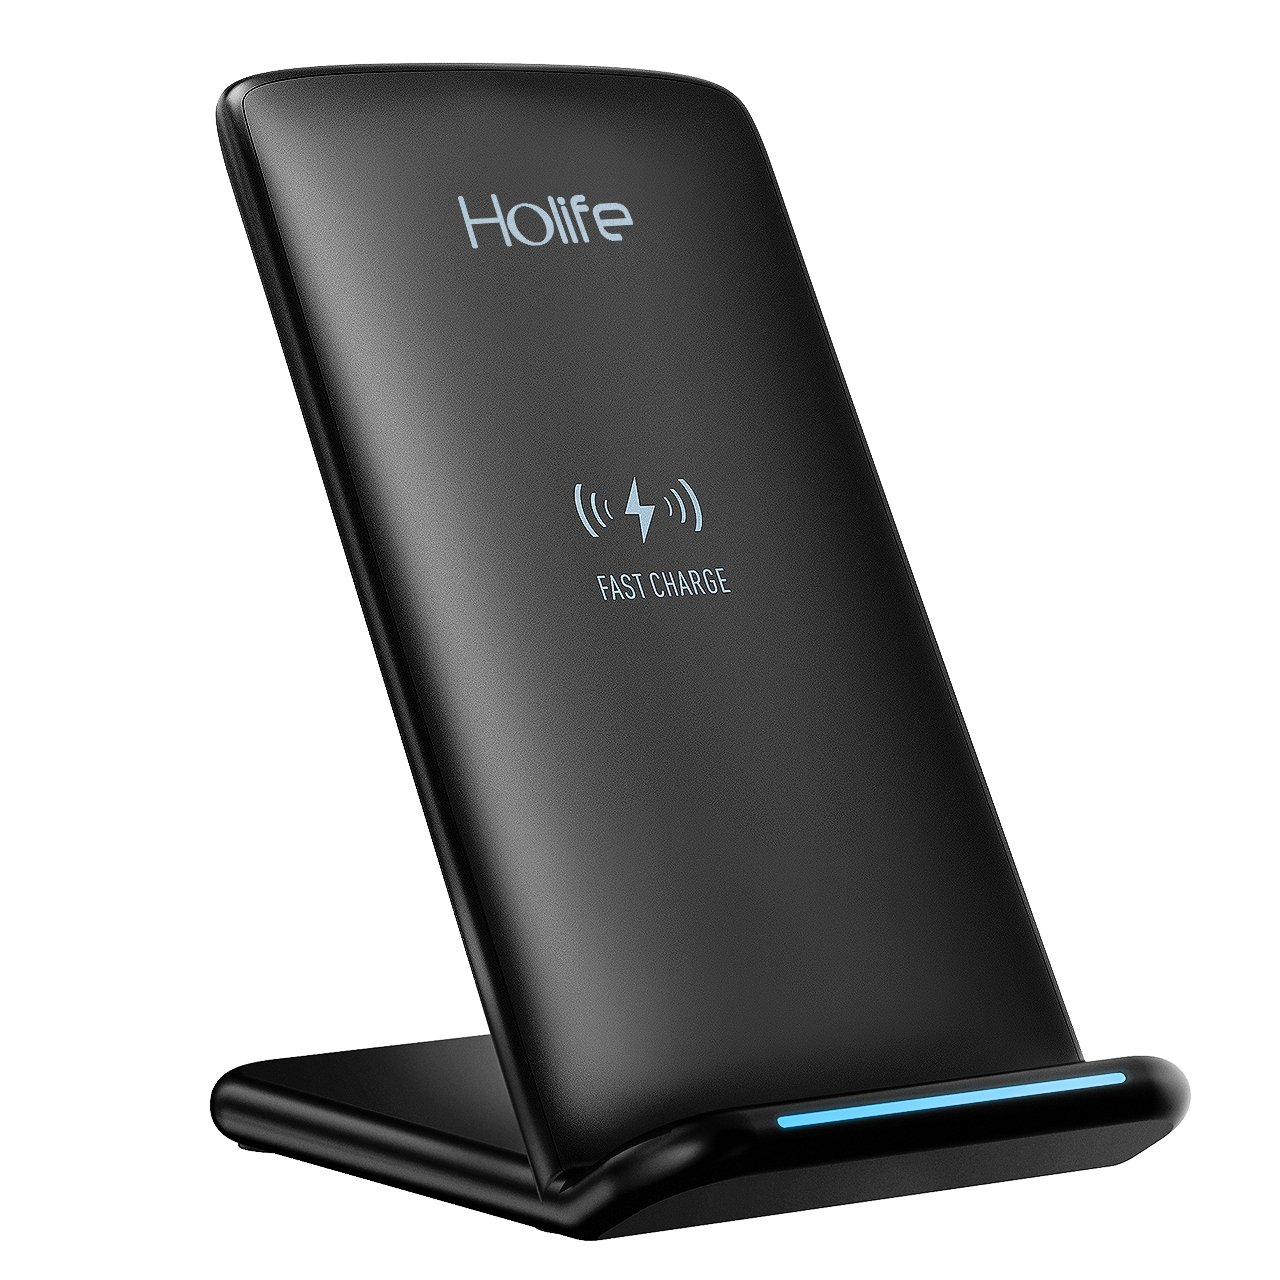 Holife Cargador Inalámbrico Rápido Qi Wireless Charger iPhone Samsung QC  iPhone